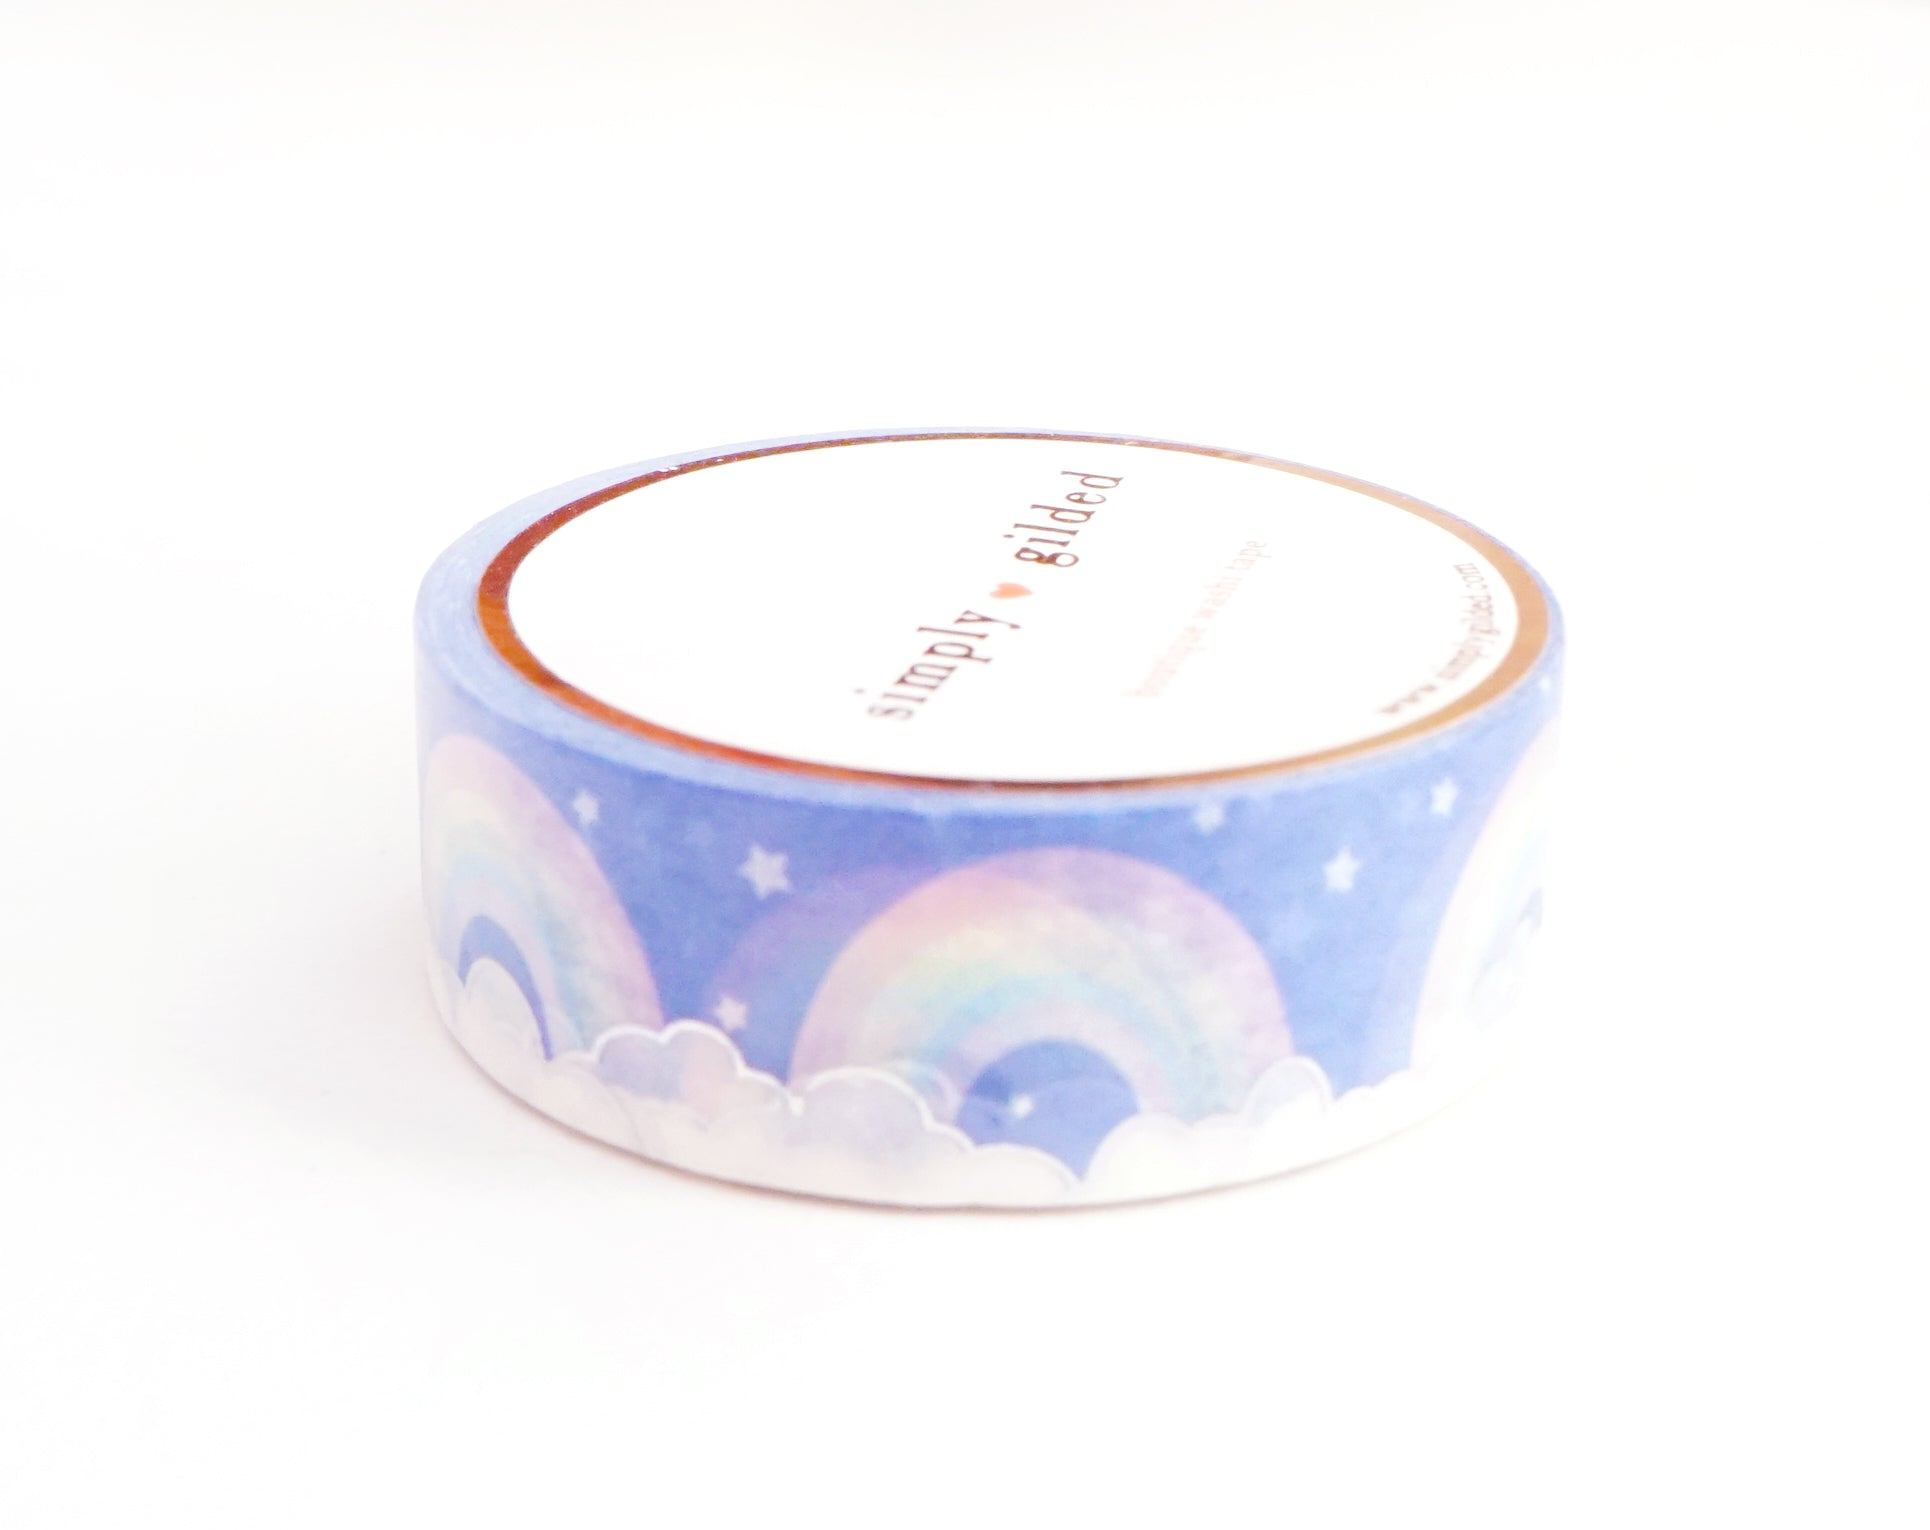 WASHI TAPE 15mm - SWEET DREAMS Rainbows + silver holographic foil (March 17 Release)